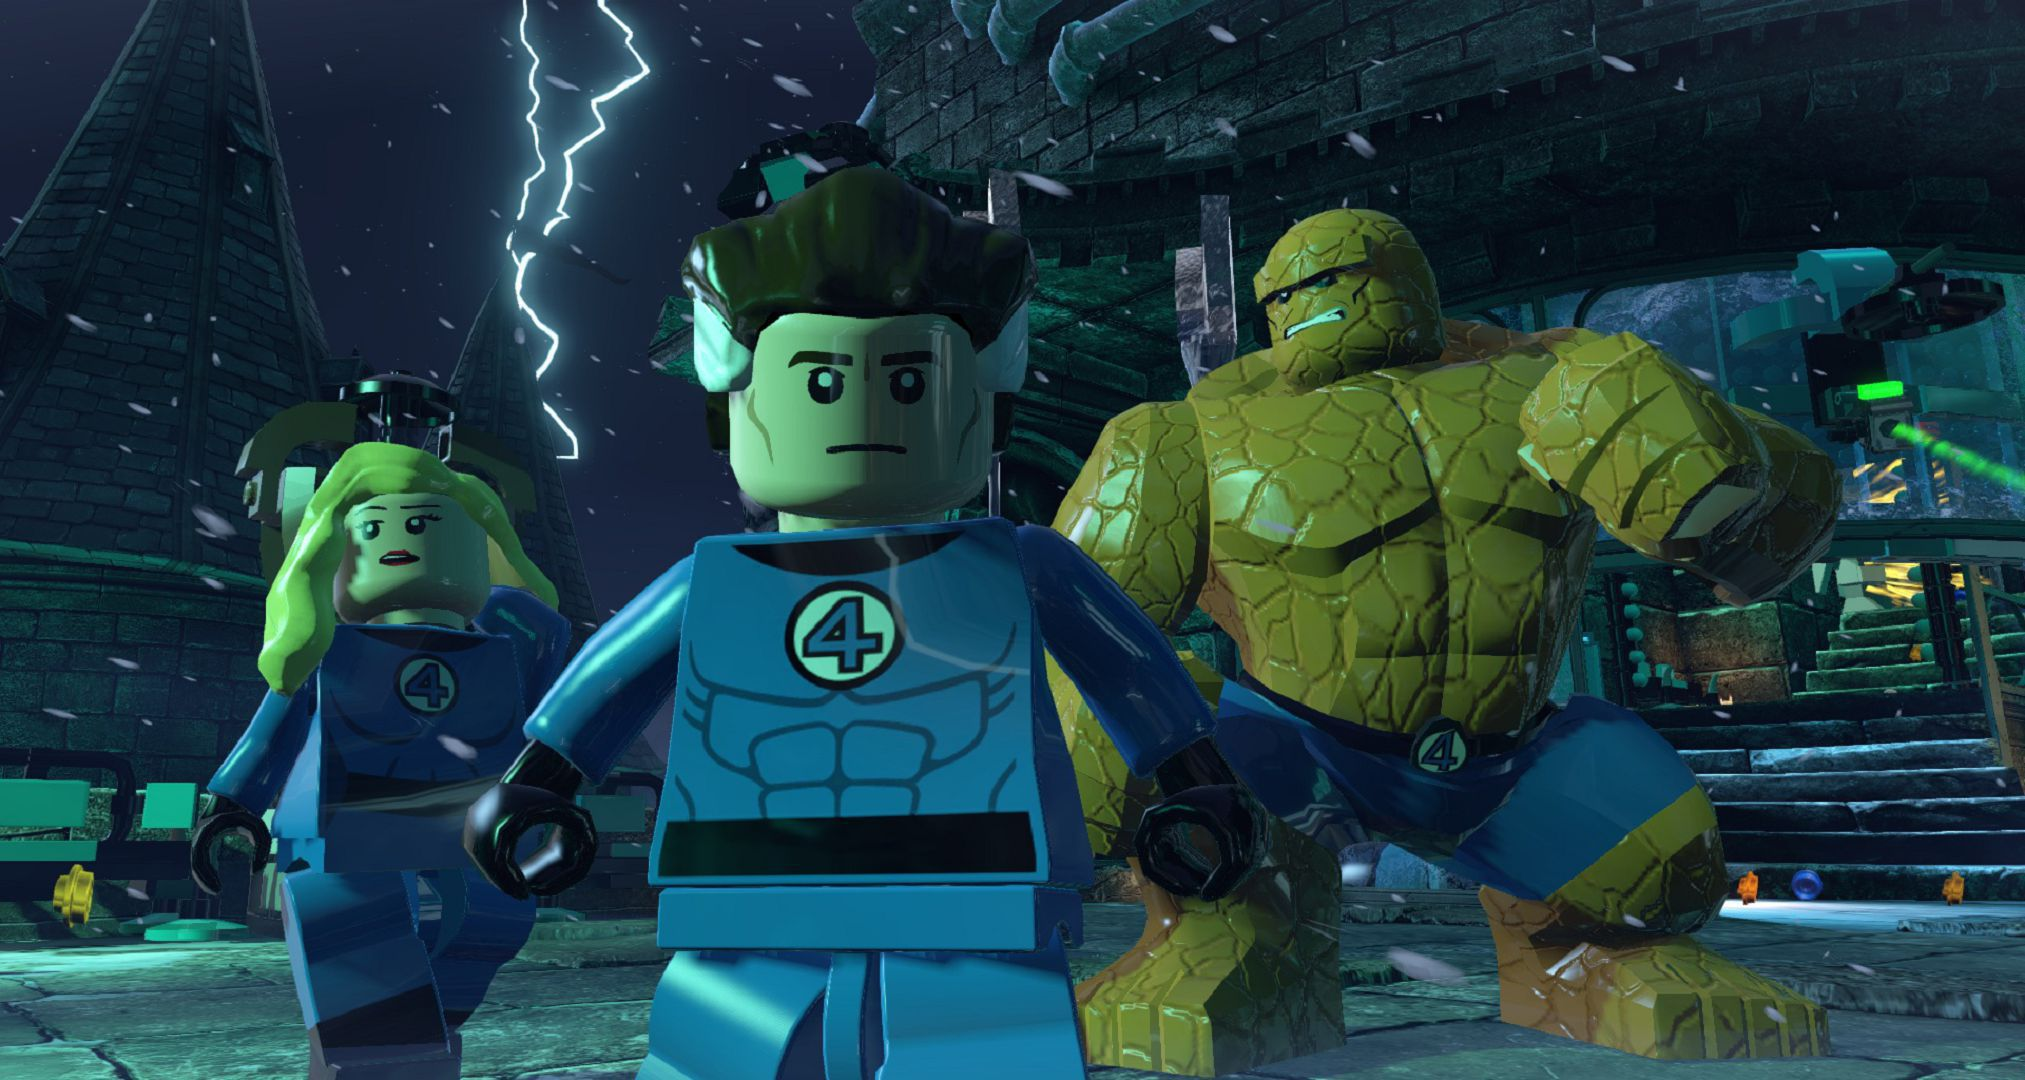 lego marvel wallpaper for desktop - photo #22